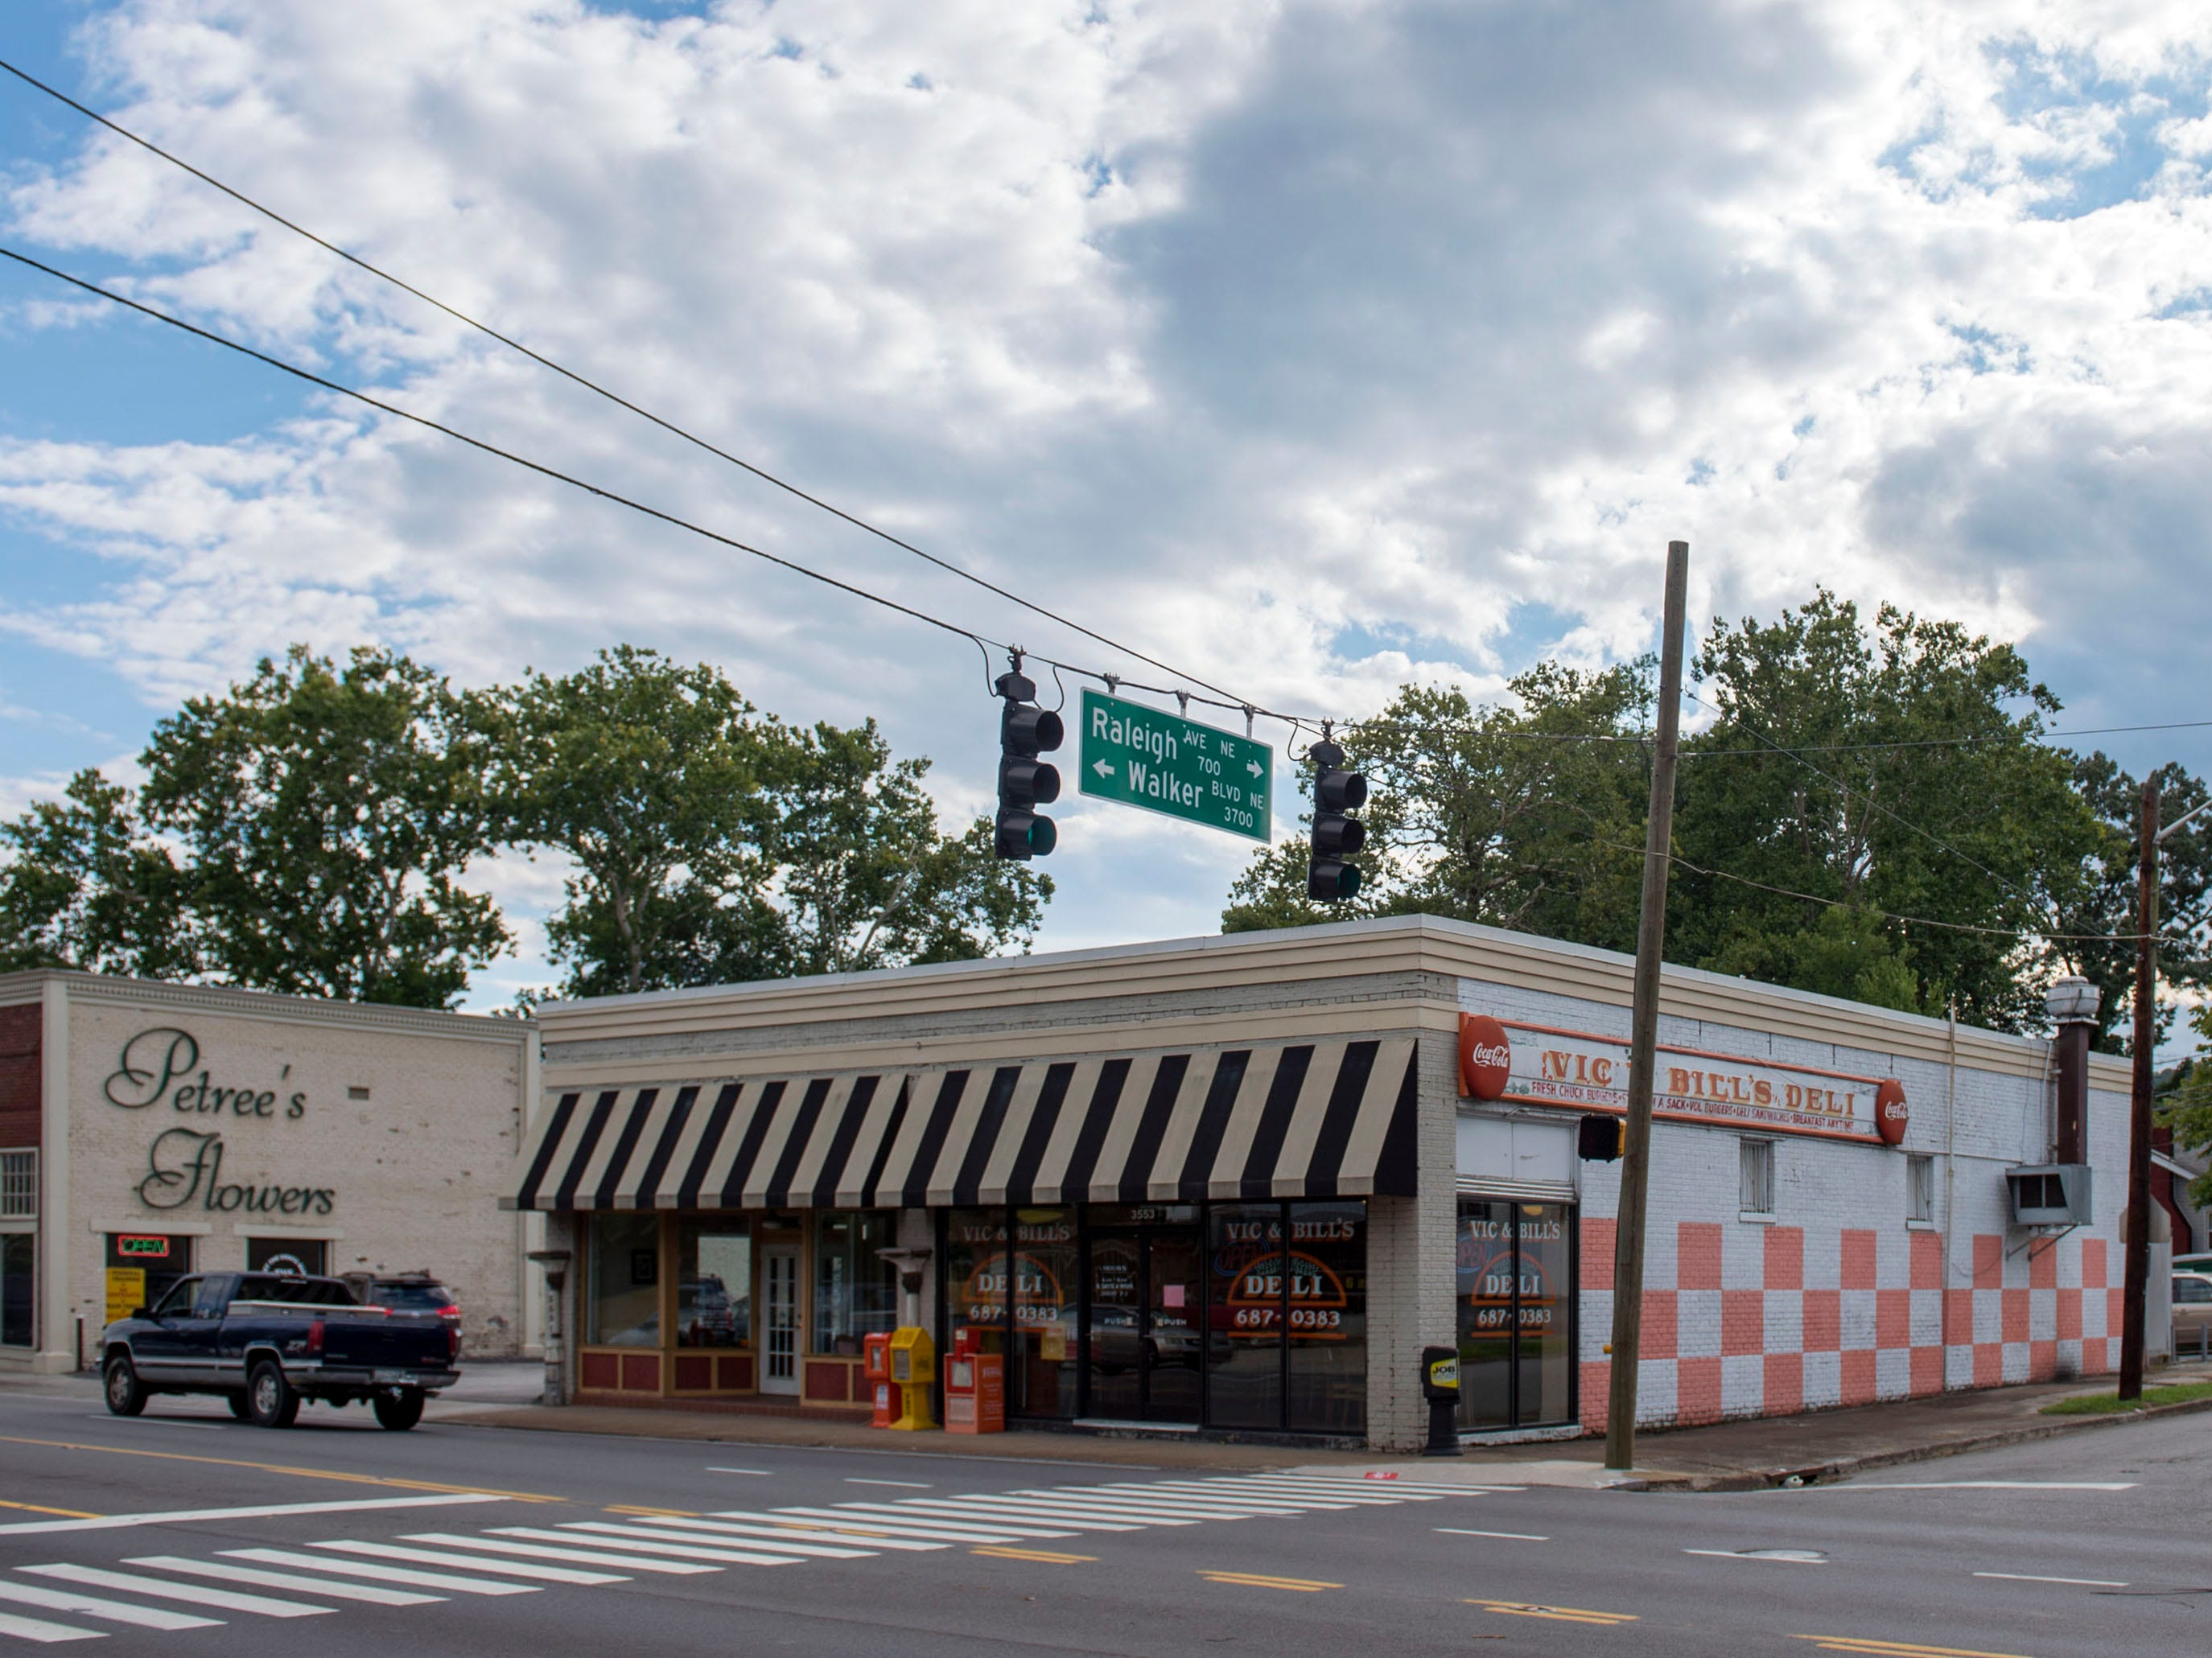 Vic & Bills Deli at Broadway has closed on Monday, July 28, 2014.